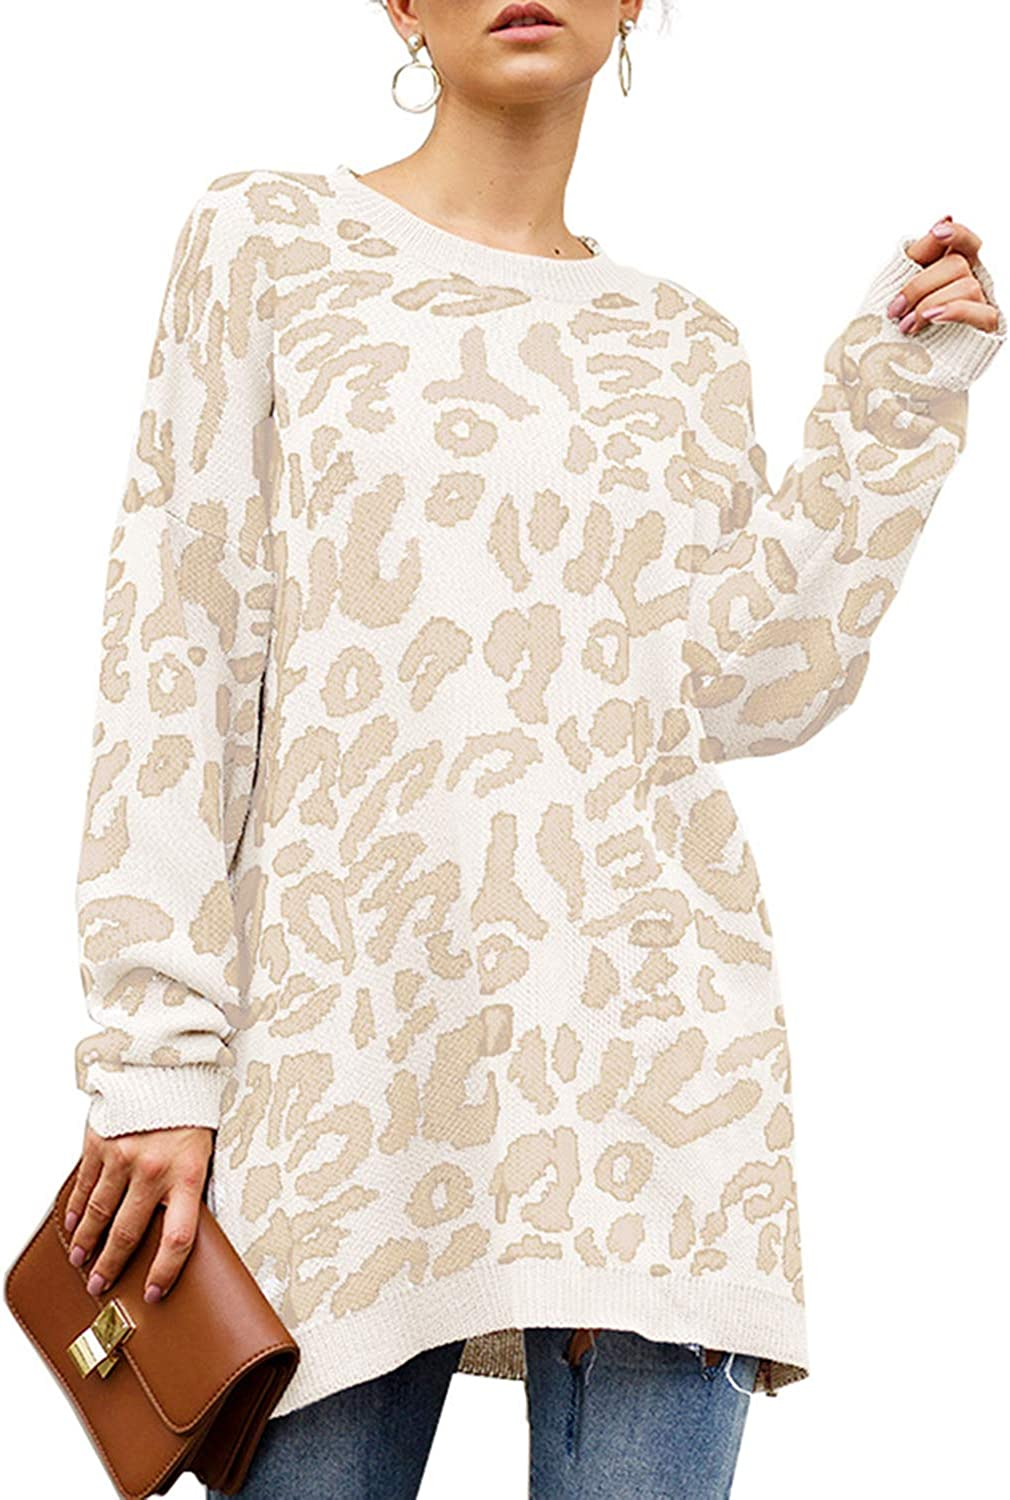 Très Chic Mailanda Women's Leopard Print Sweaters Pullover Oversized Long Sleeve Casual Loose Crew Neck Tunic Knitted Jumper